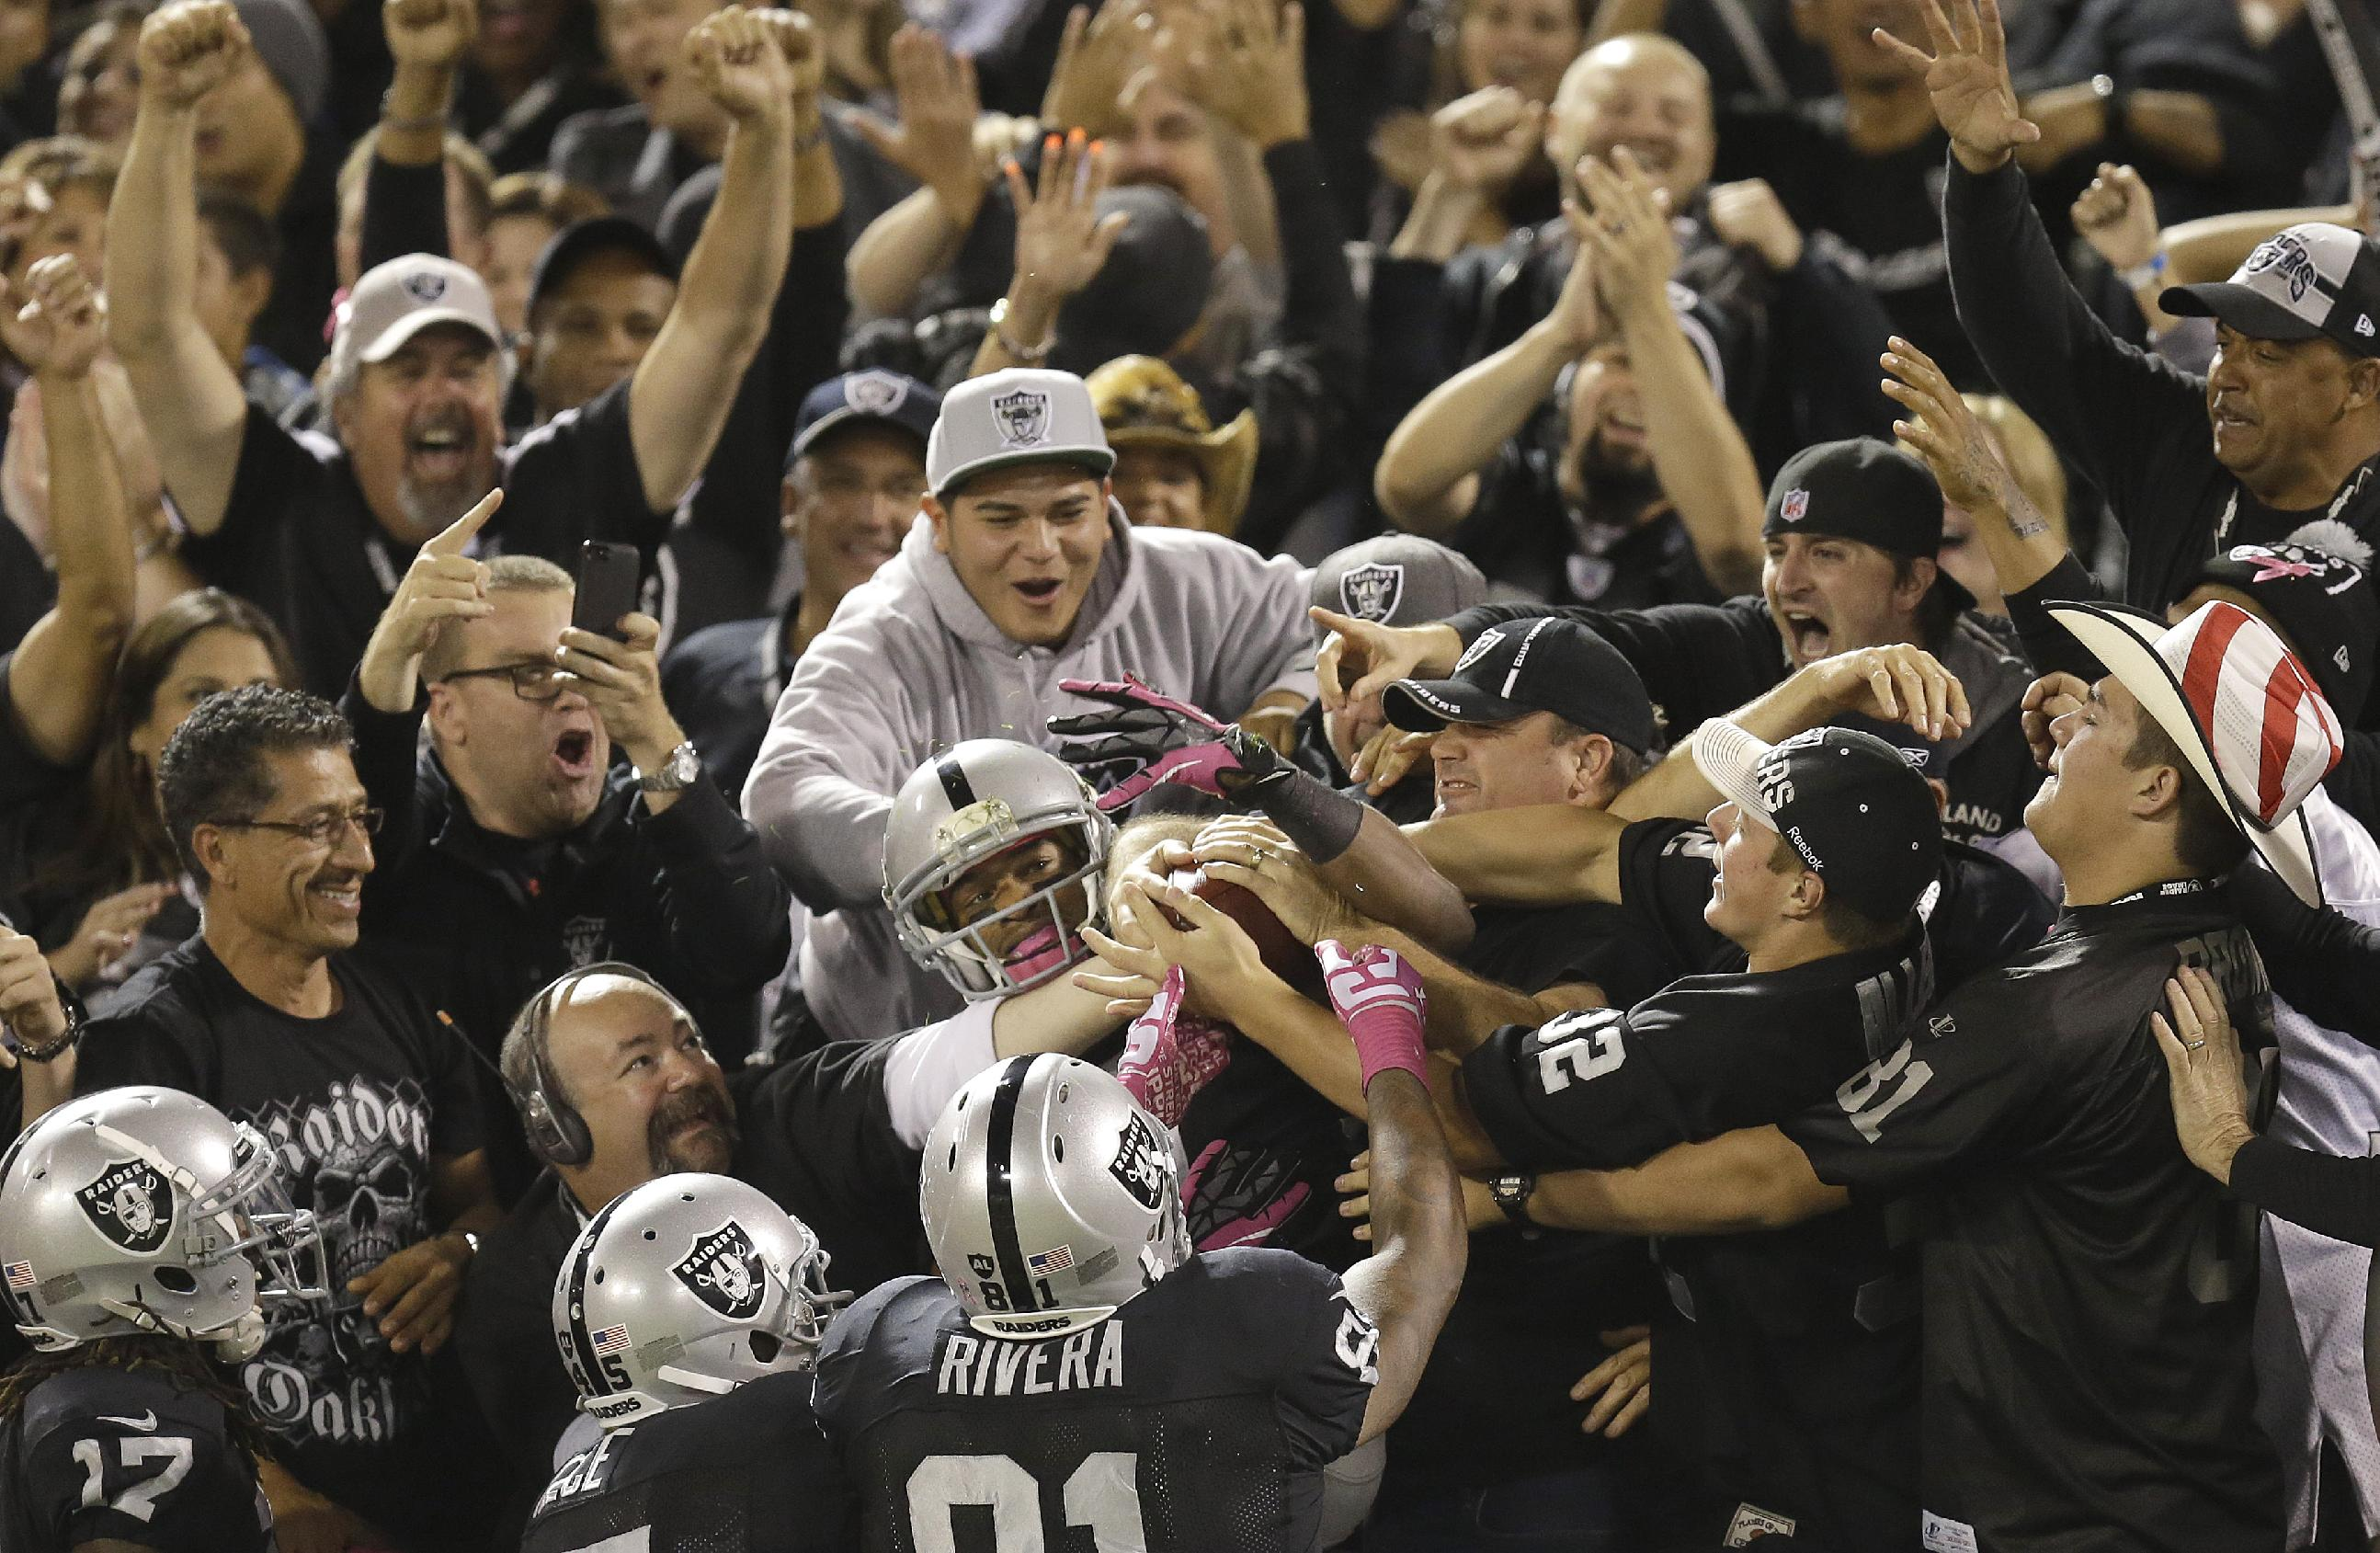 Pryor, Woodson lead Raiders past Chargers 27-17